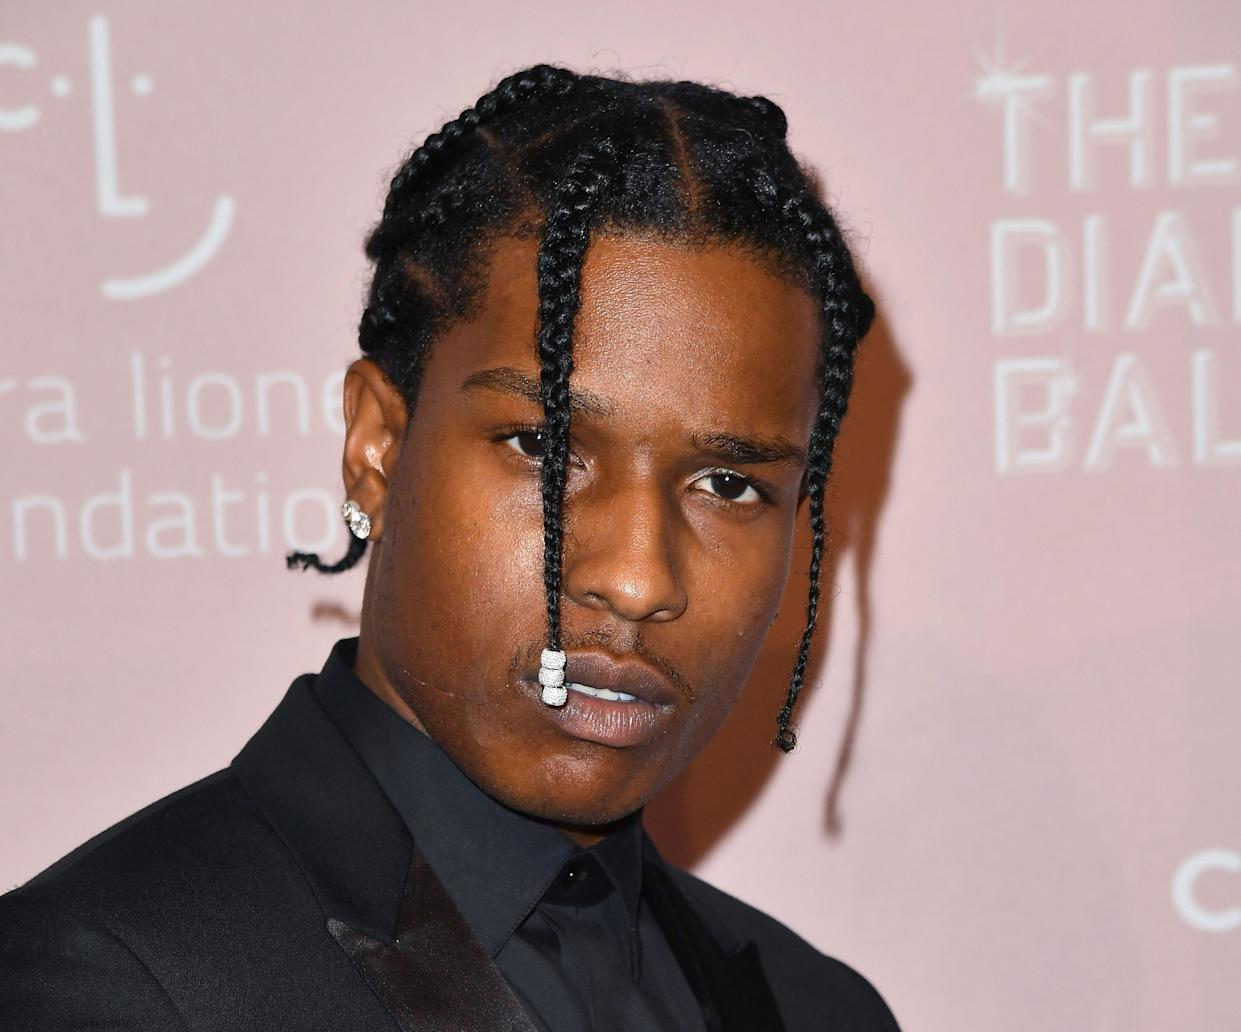 In this 2018 file photo, A$AP Rocky, who has been tried on assault charges in Sweden, attends Rihanna's 4th Annual Diamond Ball at Cipriani Wall Street in New York City.